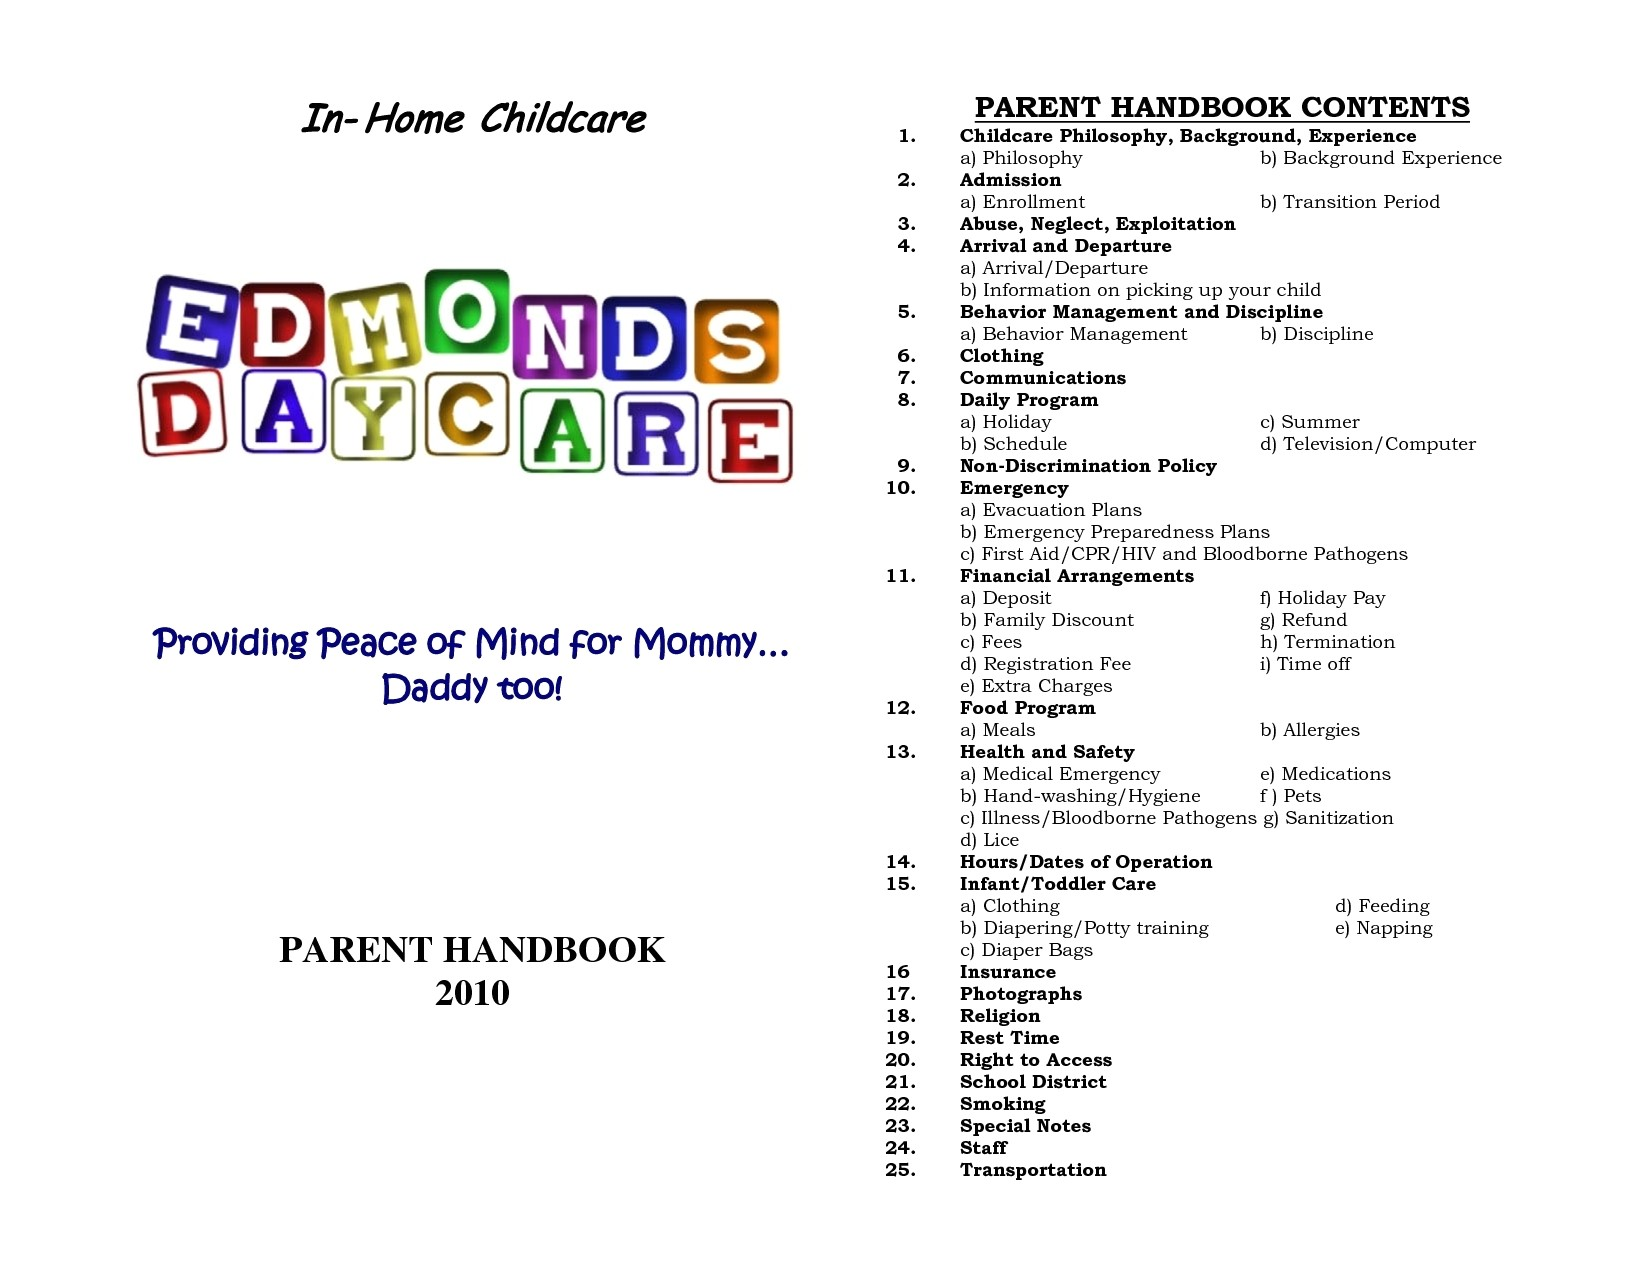 child care emergency preparedness plan template